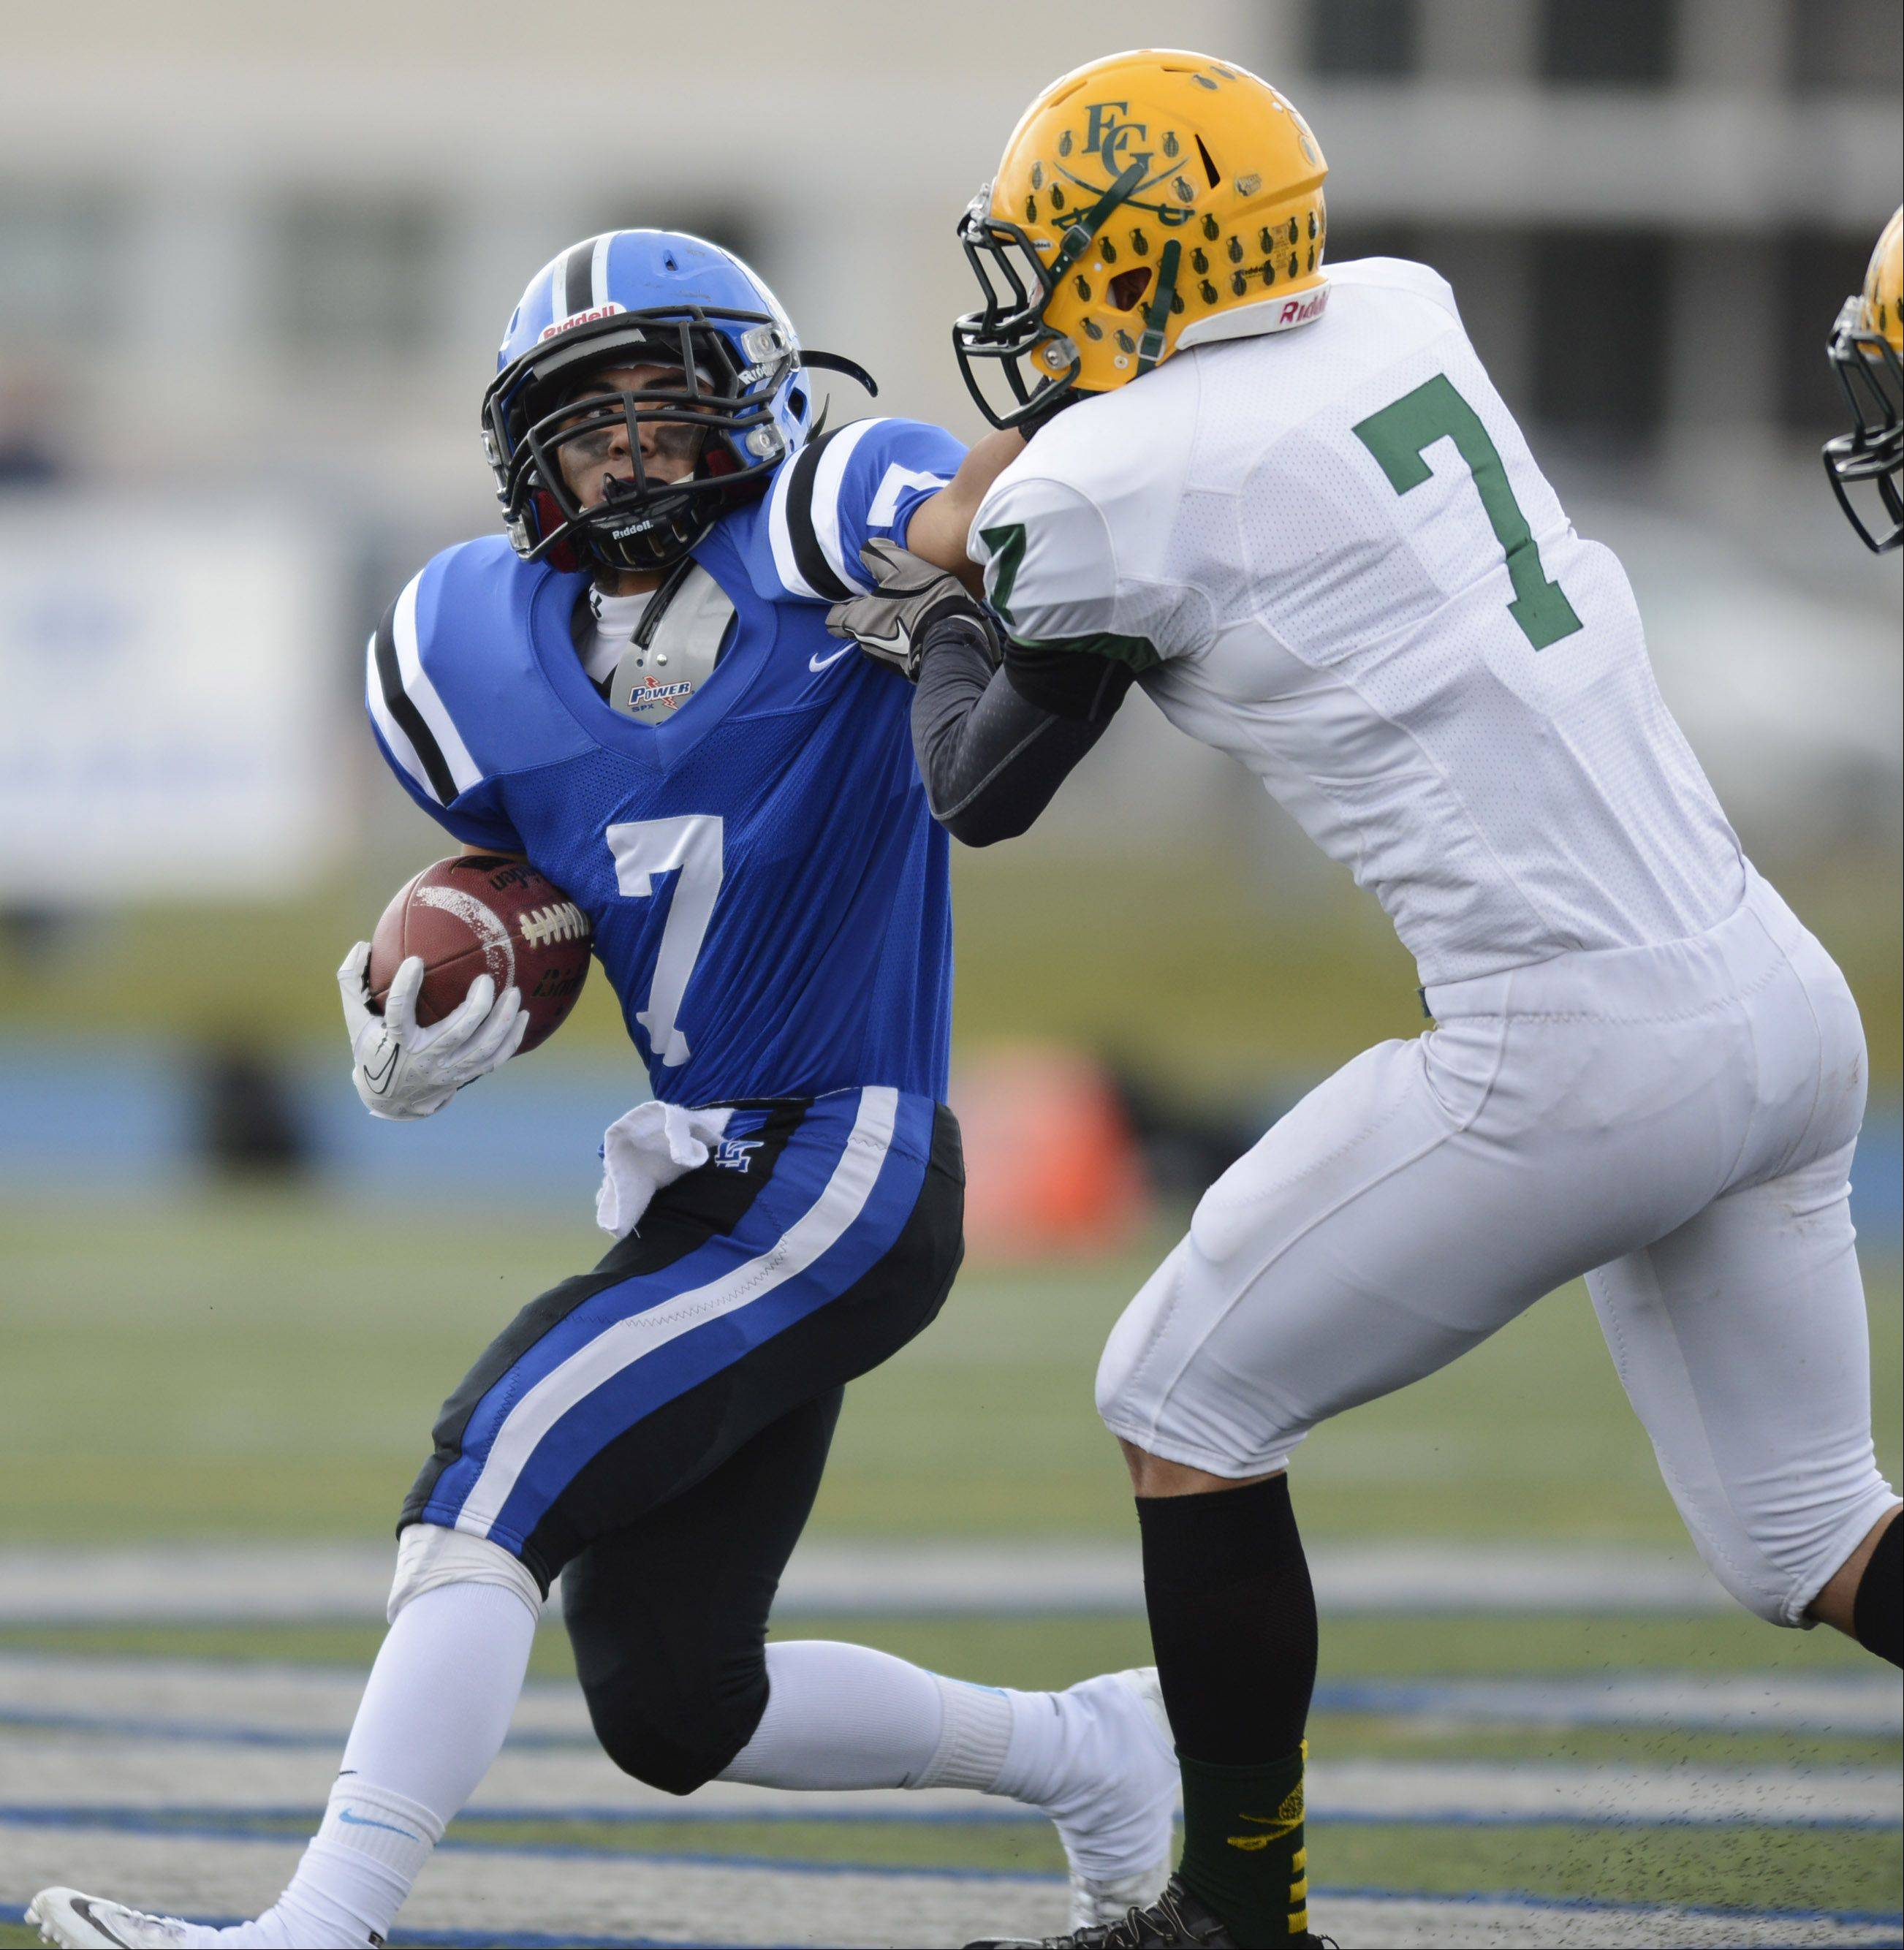 Lake Zurich's Mark Lacsam, left, gets tackled by Elk Grove's Nicolas Quirindongo during Saturday's Class 7A playoff game.